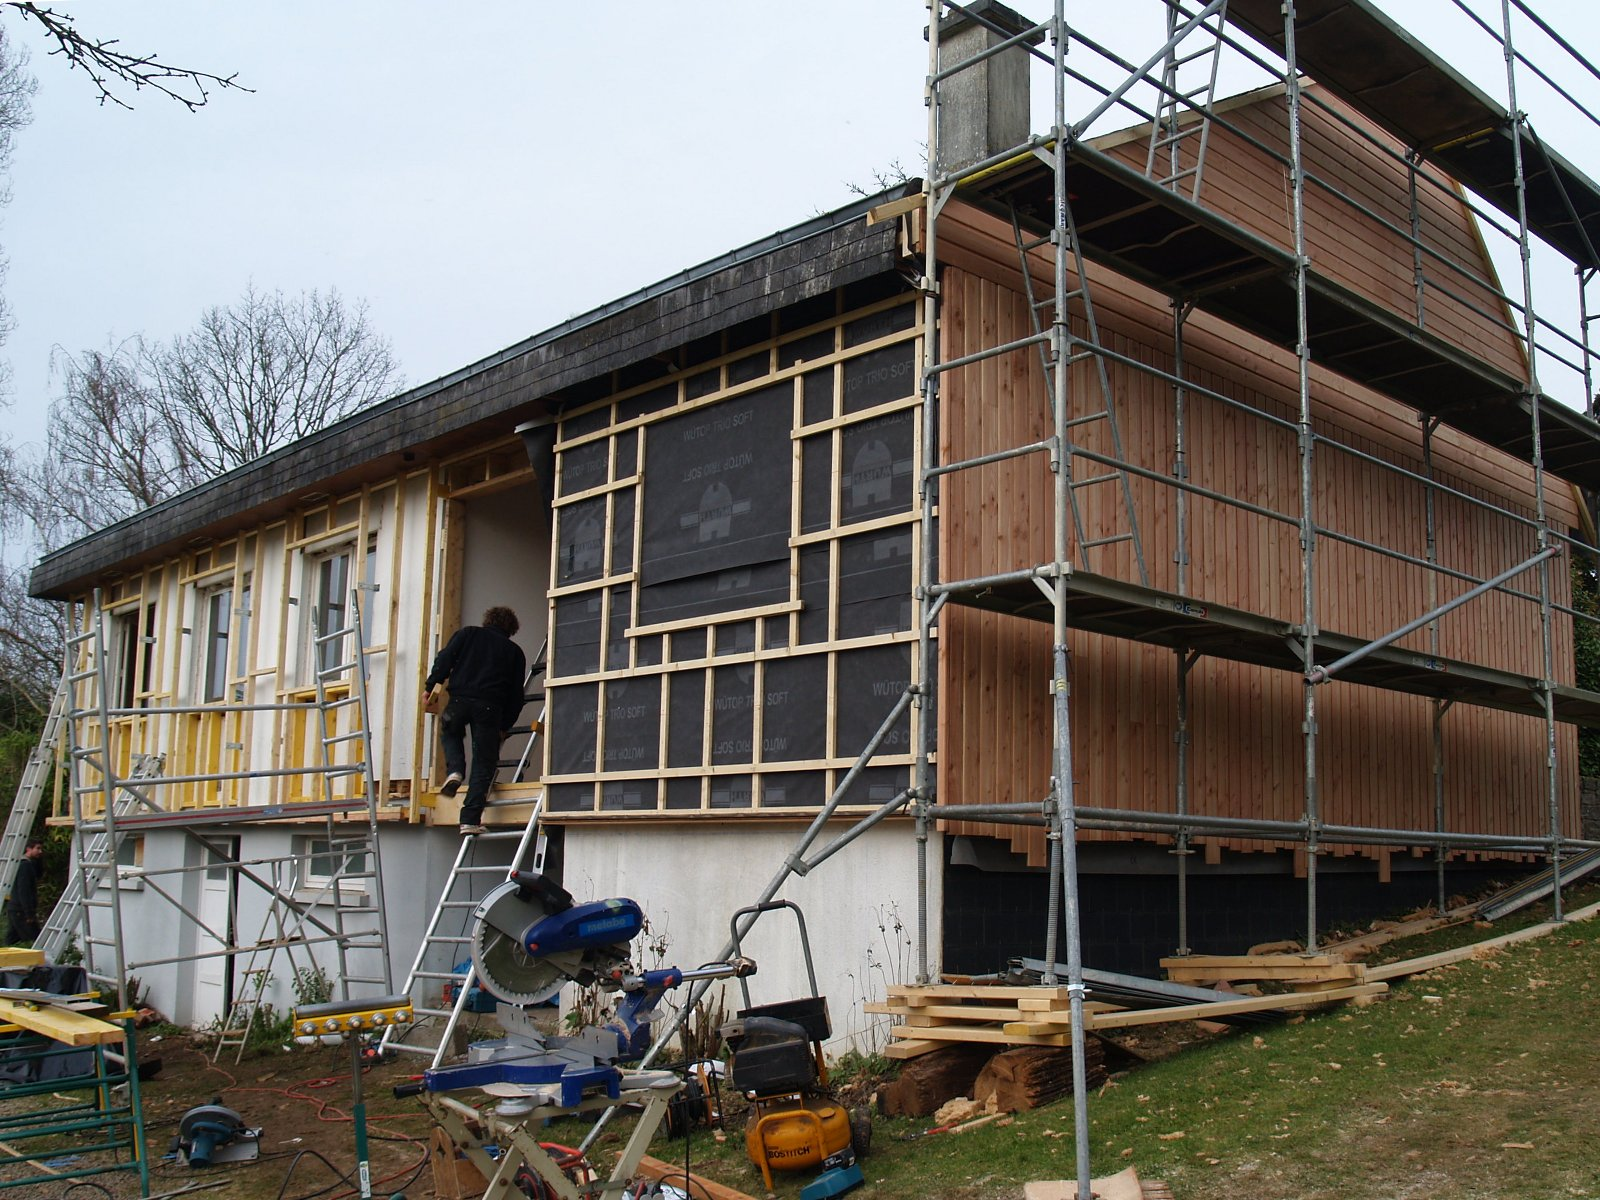 R novation thermique 2012 2013 atelier architecture verte - Renovation maison avant apres travaux ...